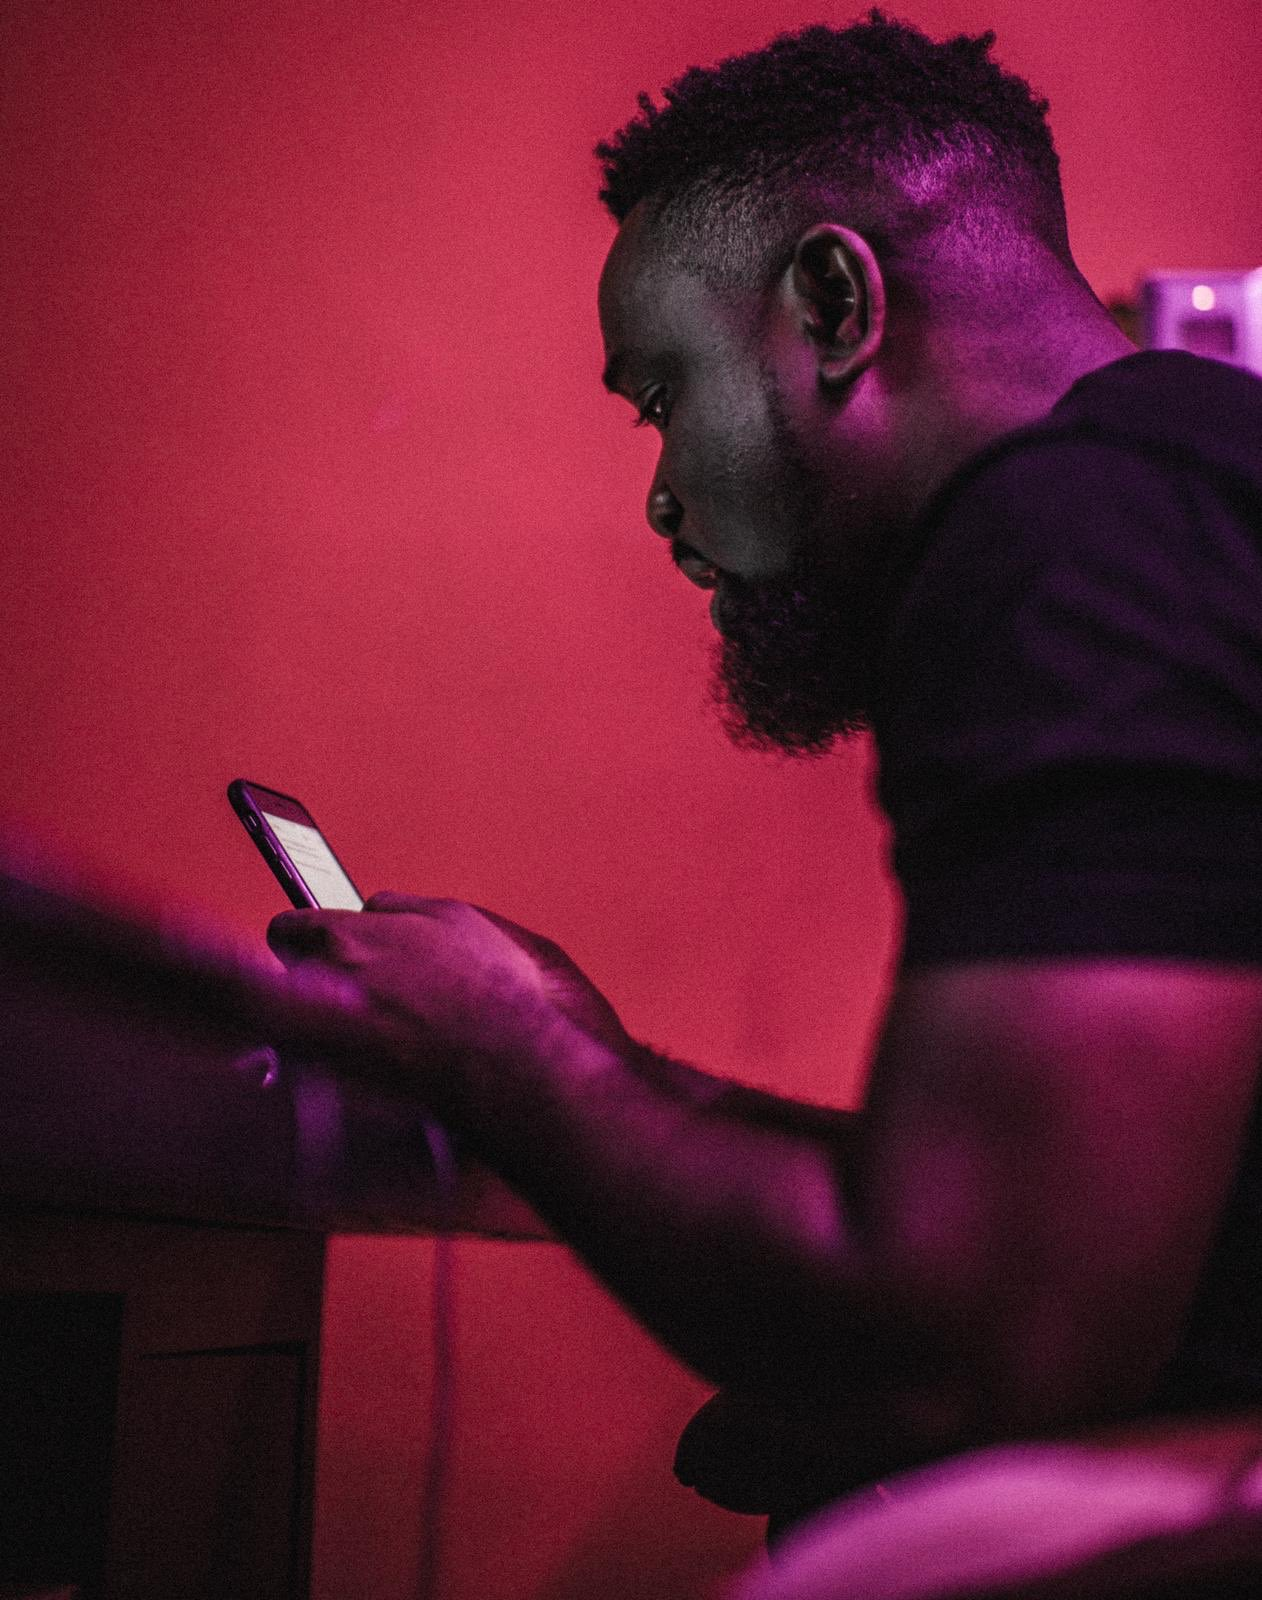 Nigerian Artistes Are Bigger Than Us Because They Support Each Other - Sarkodie